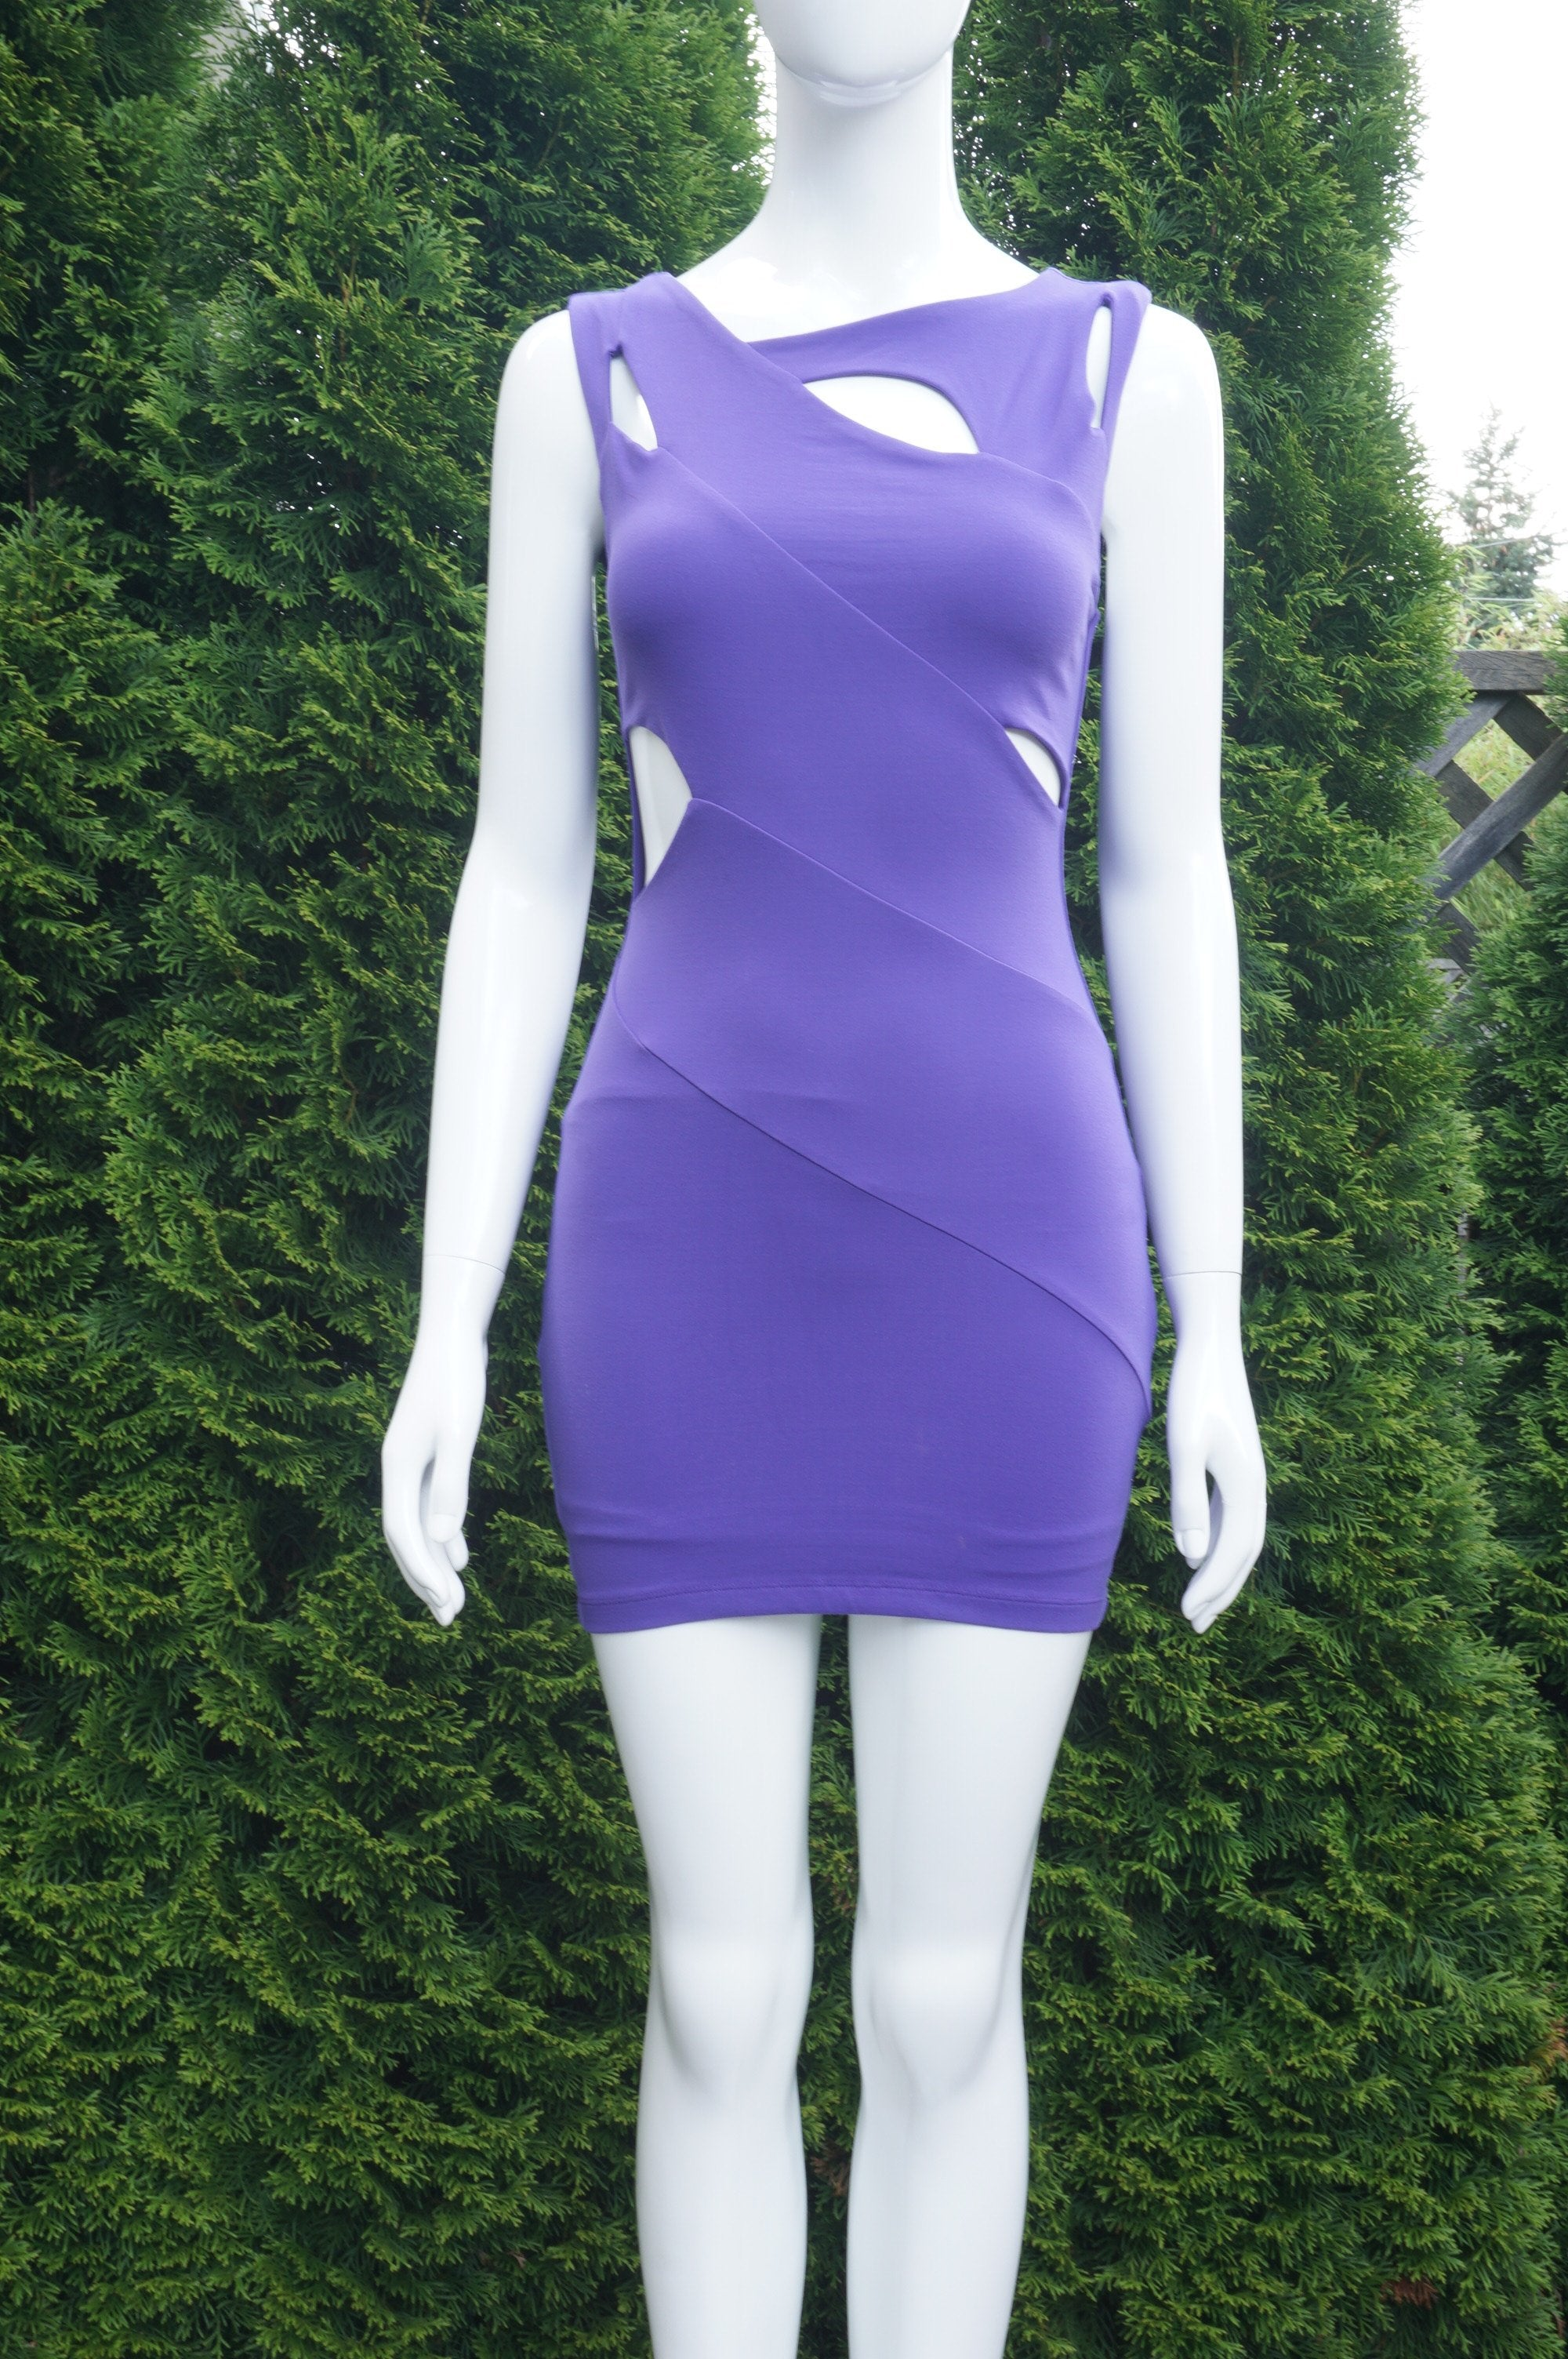 Bebe Purple Sleeveless Mini Dress with Cut-out Design, Stretchy material. Bust 30 inches, Waist 23 inches, length 30 inches, Purple, Body: 88% Nylon, 12% Spandex. Lining: 95% Polyester, 5% Spandex, women's Dresses & Rompers, women's Purple Dresses & Rompers, Bebe women's Dresses & Rompers, cut-out dress, bodycon dress,